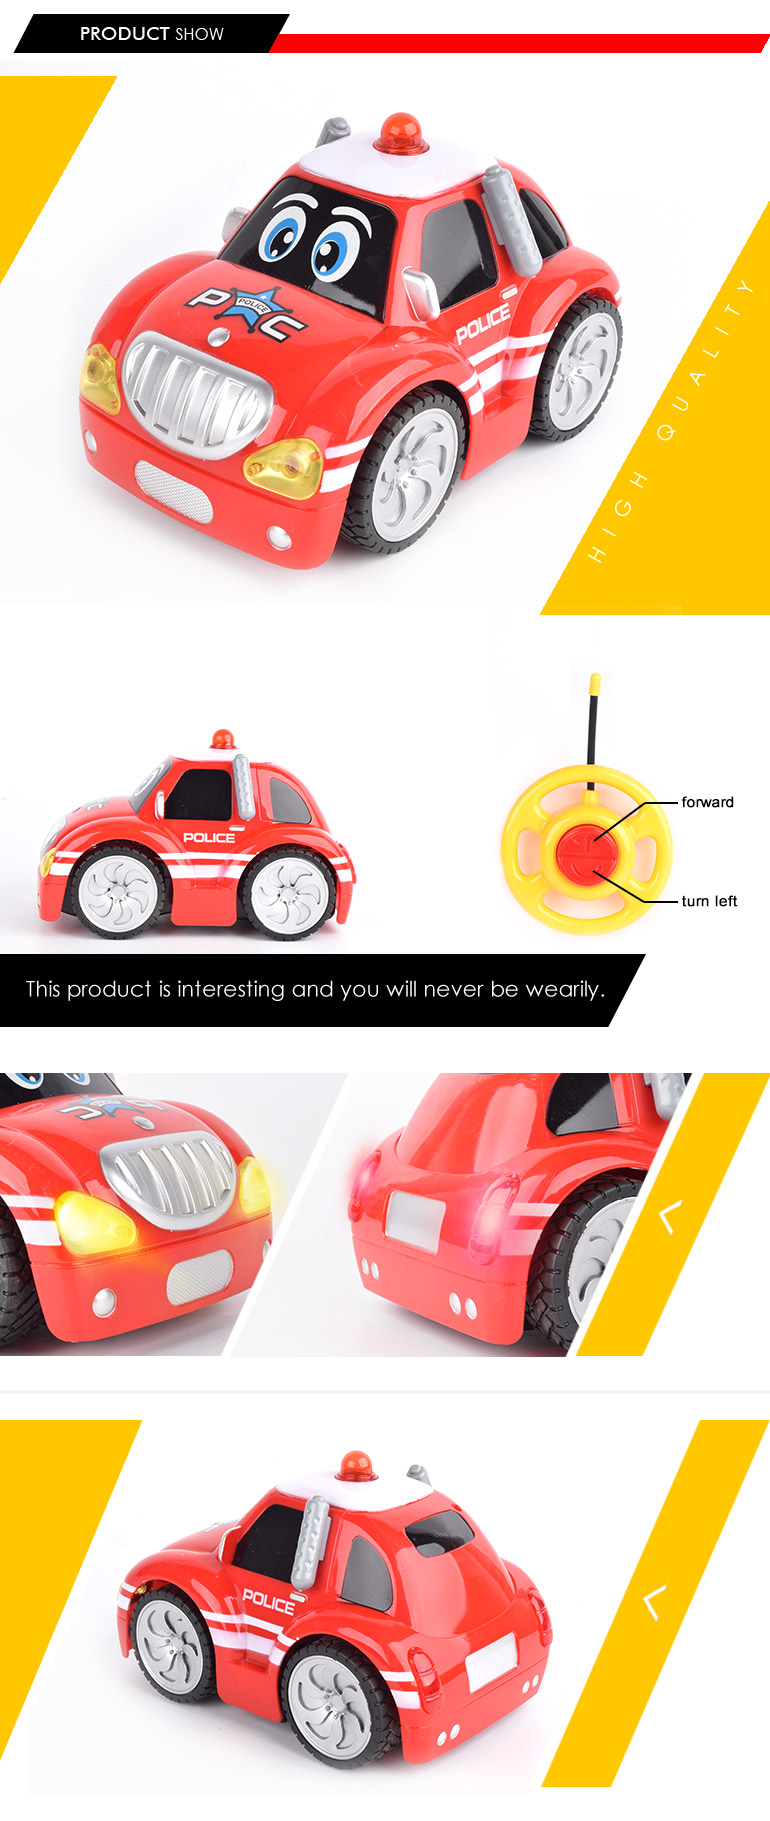 universal hobby 2CH plastic model car steering wheel for remote control